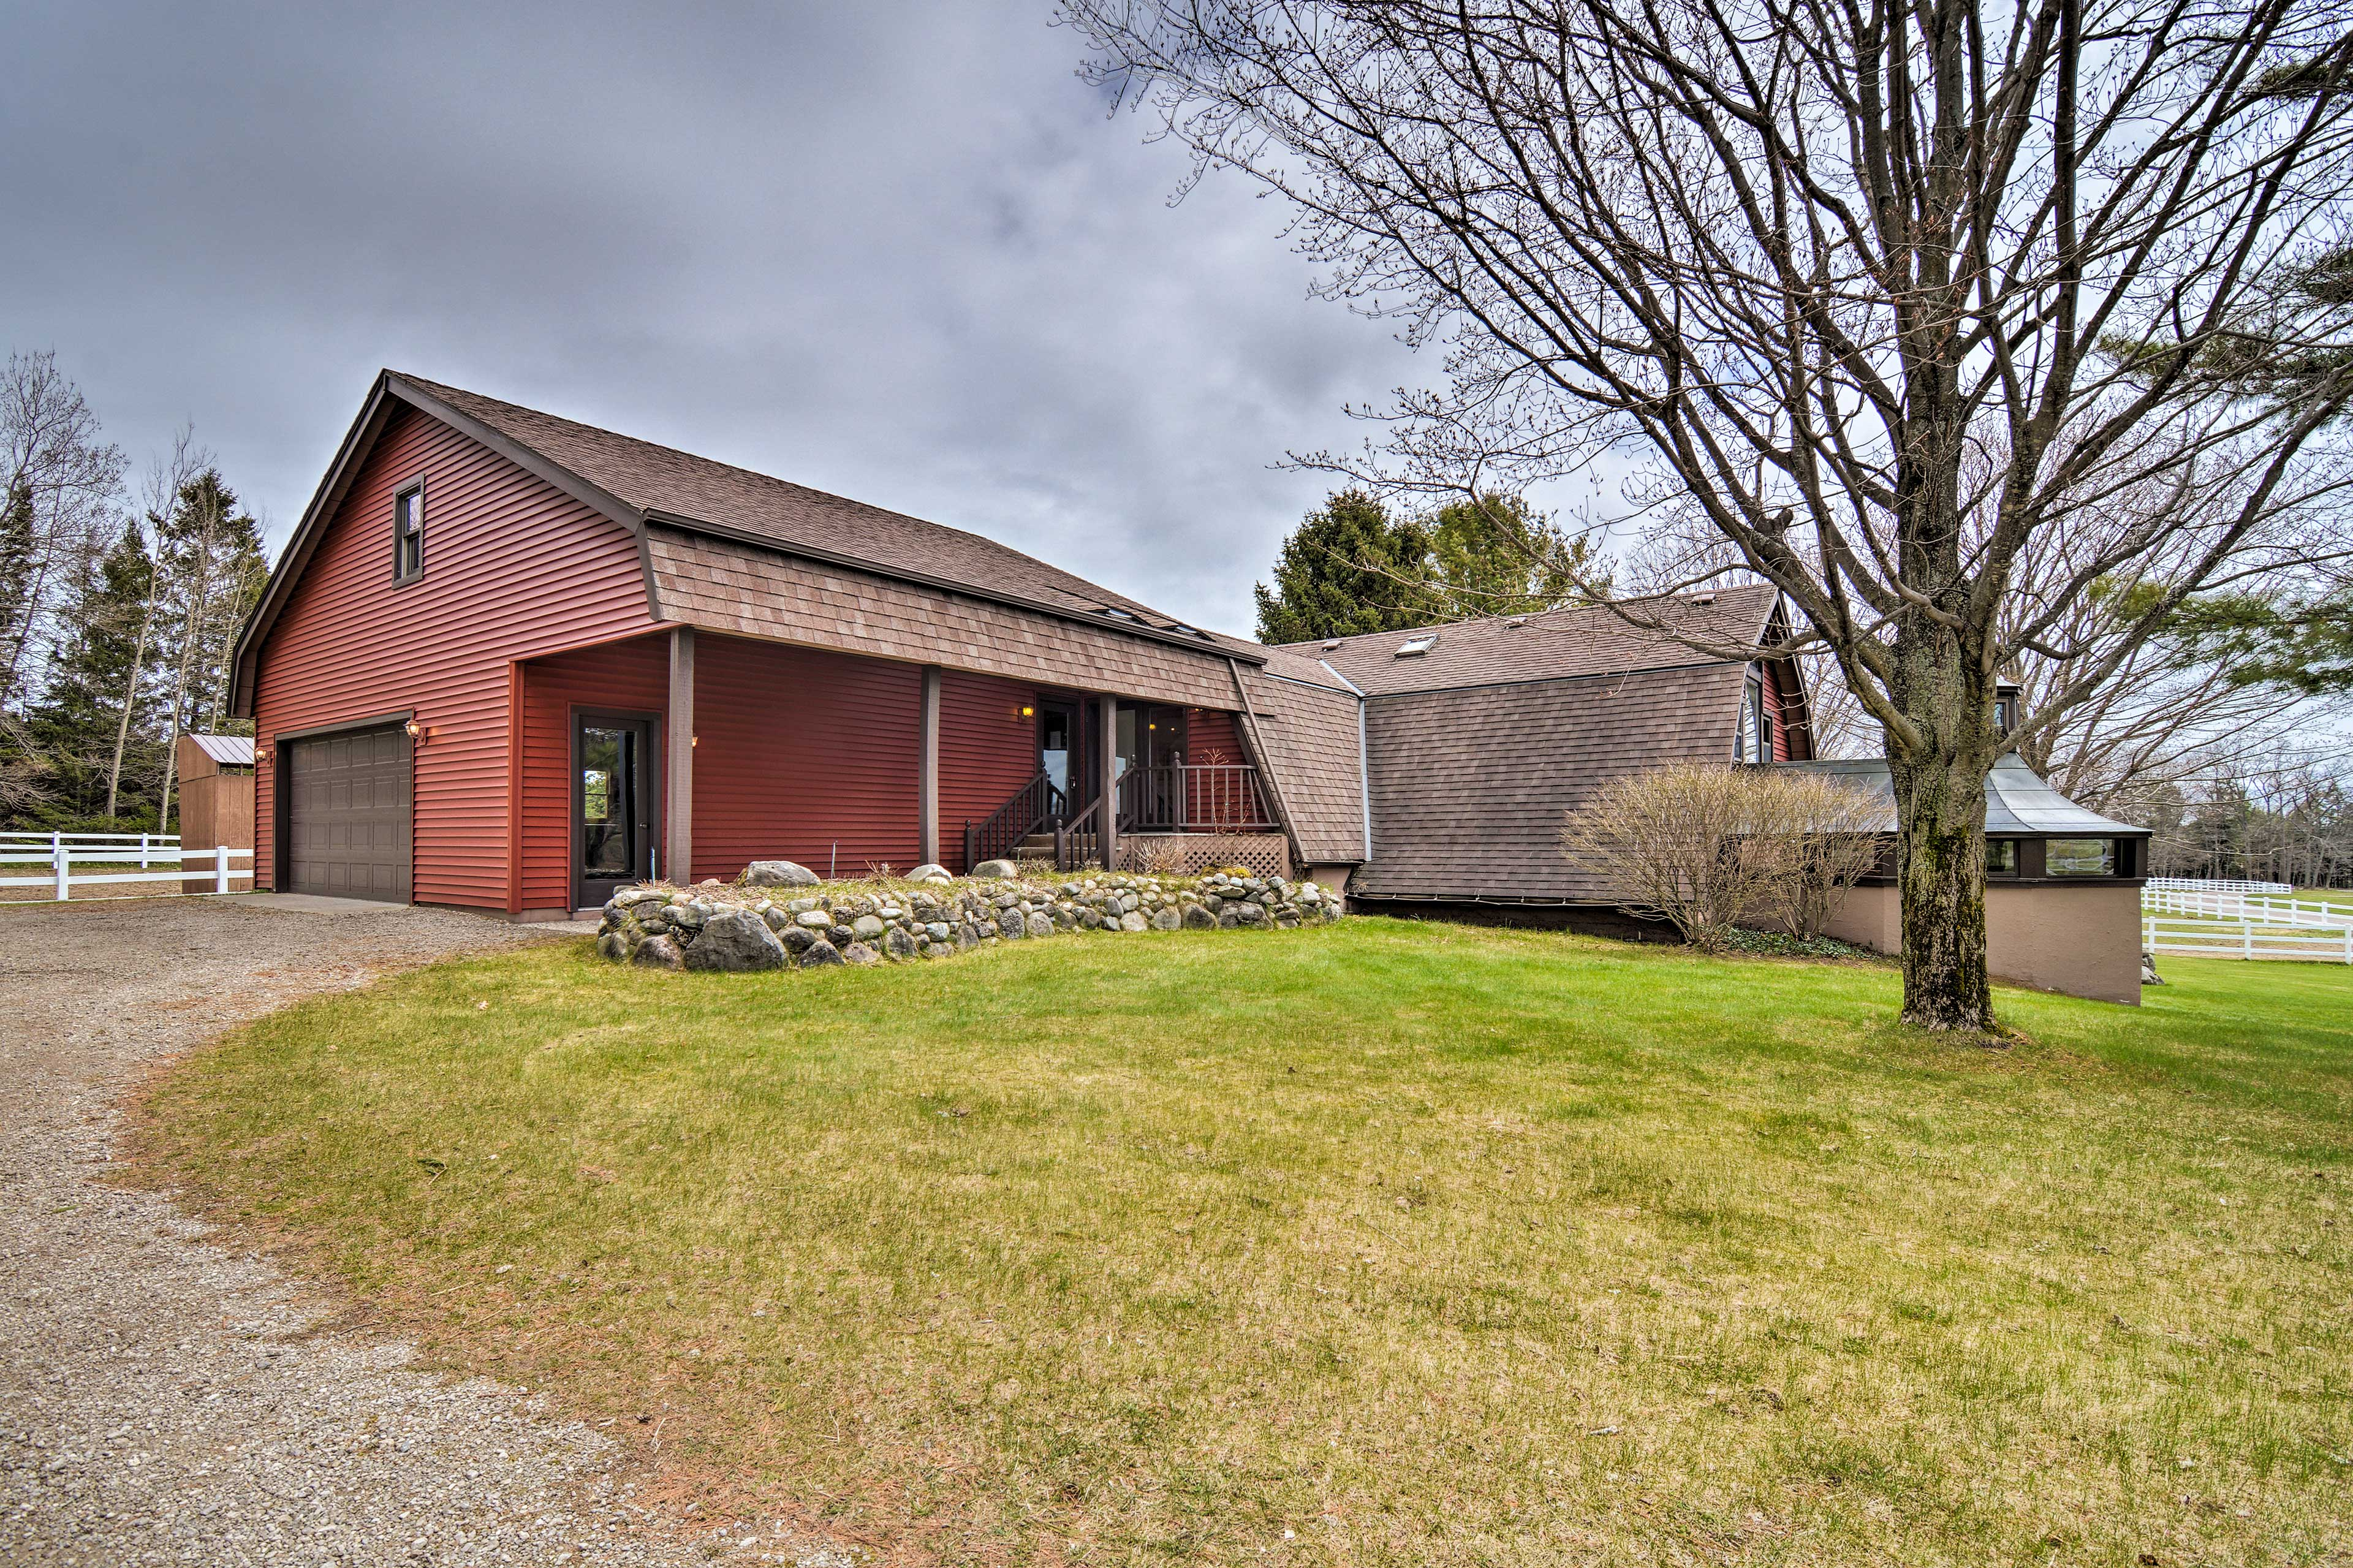 The garage and driveway provide ample parking for guests.